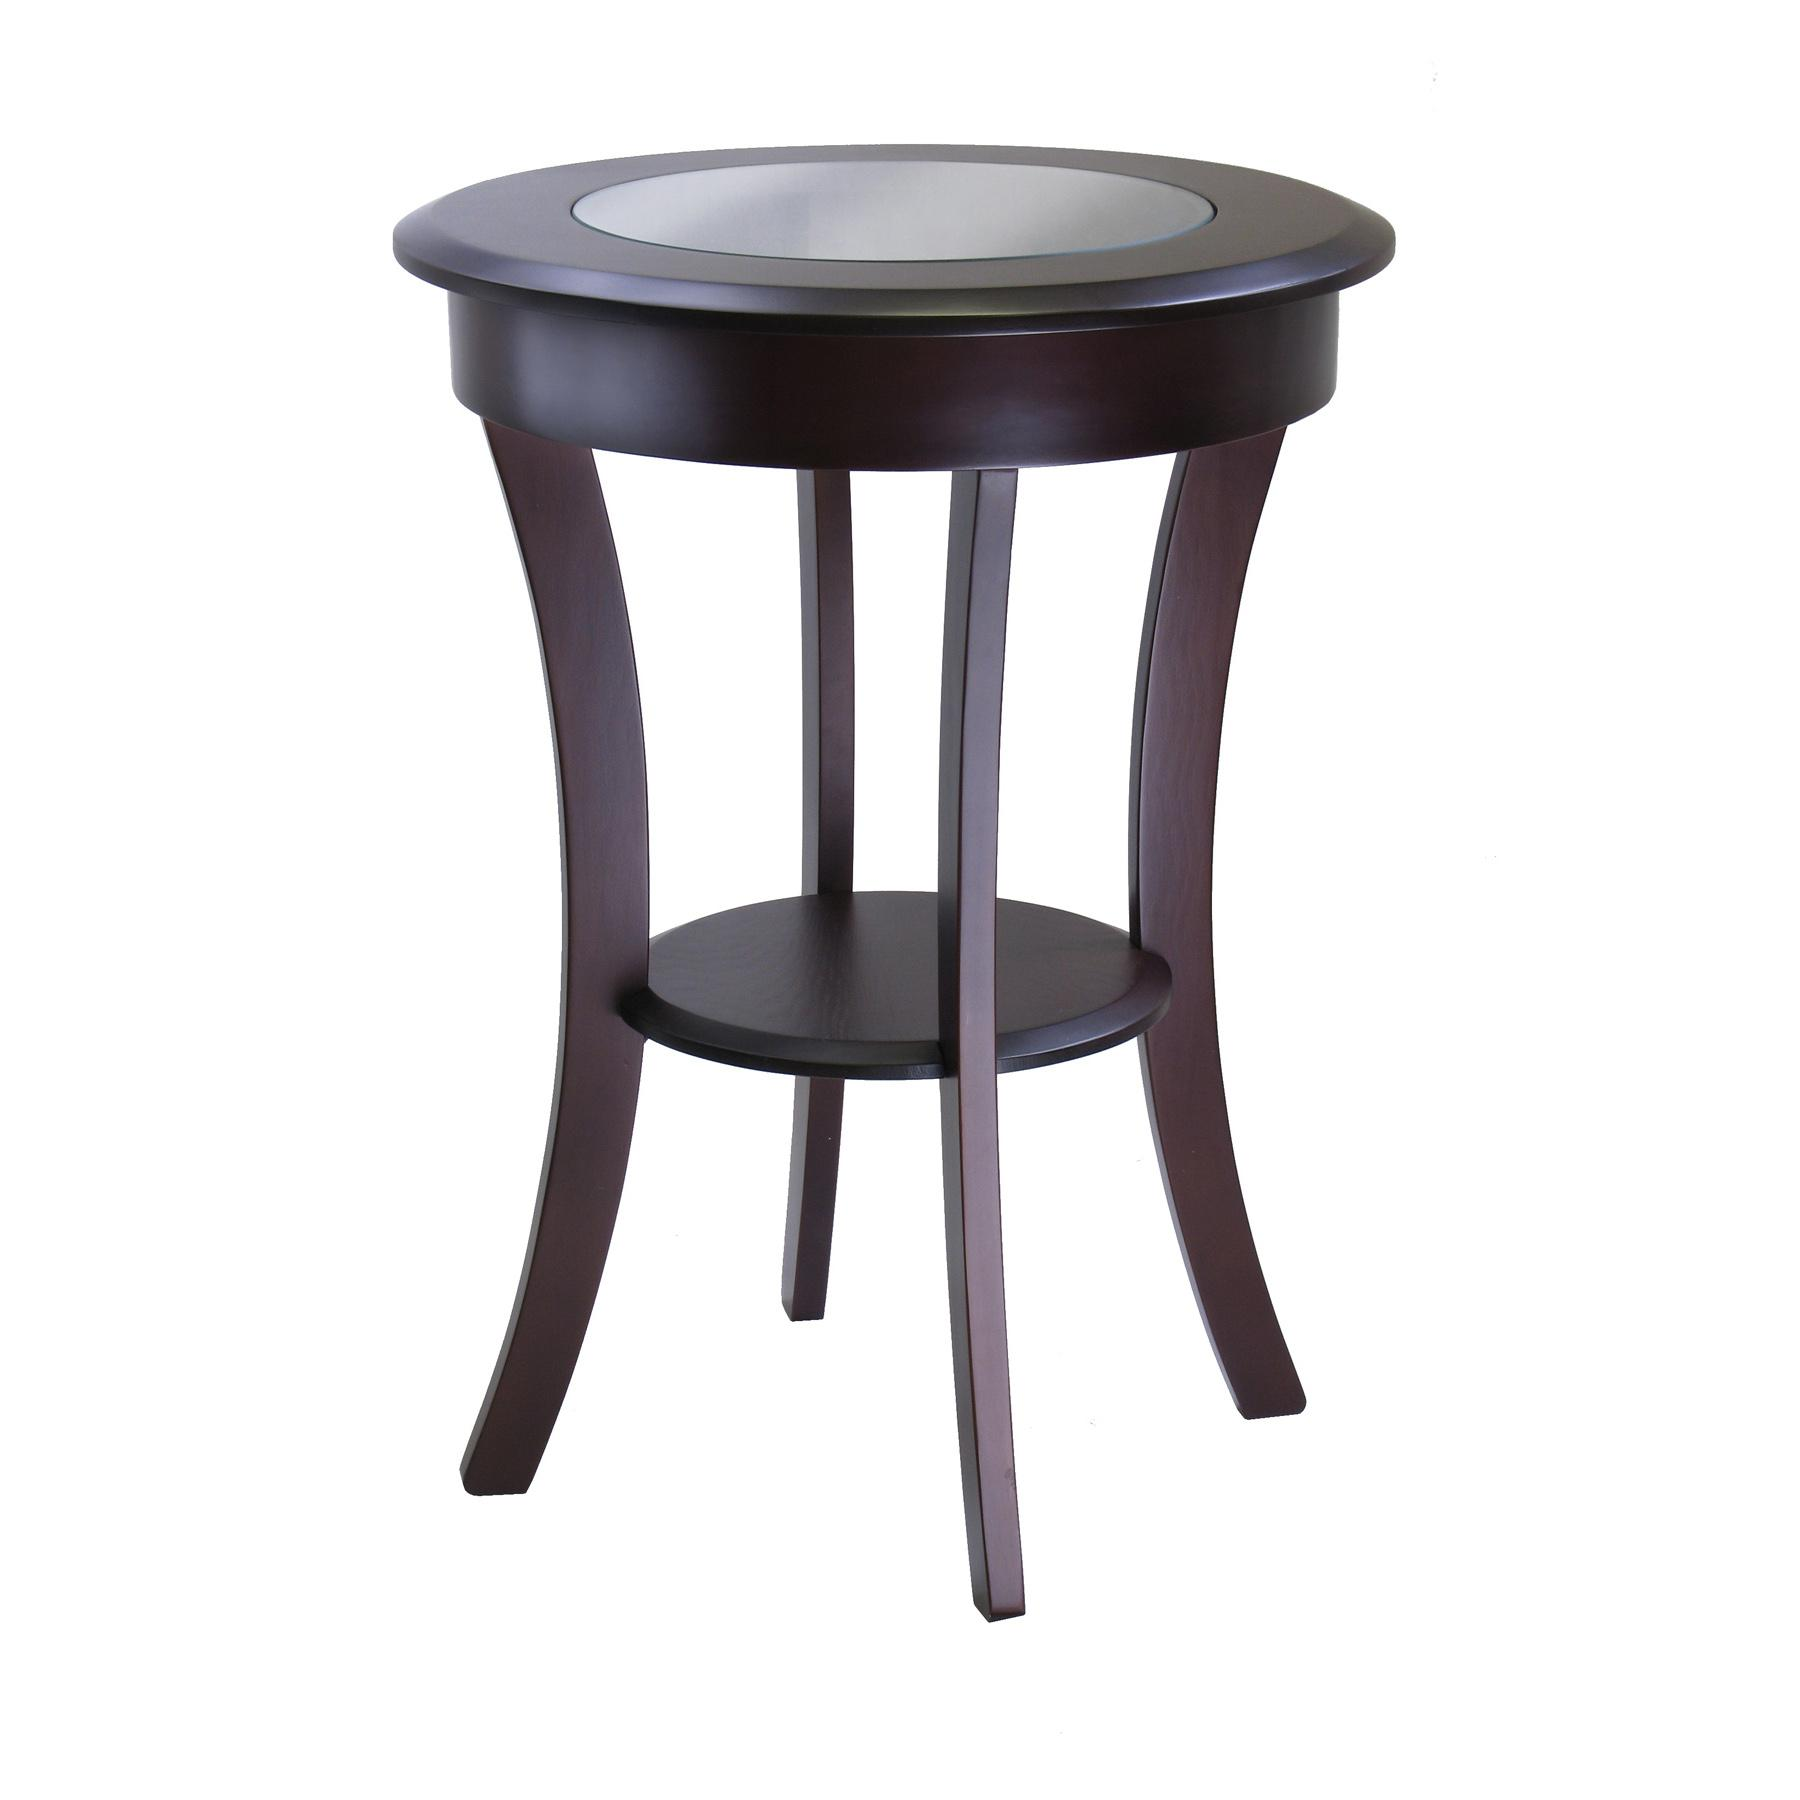 surprising inch tall round accent table decorating patio cover rentals chairs rent tablecloth and tables ideas small for stools covers kitchen cloth full size chrome dining ikea